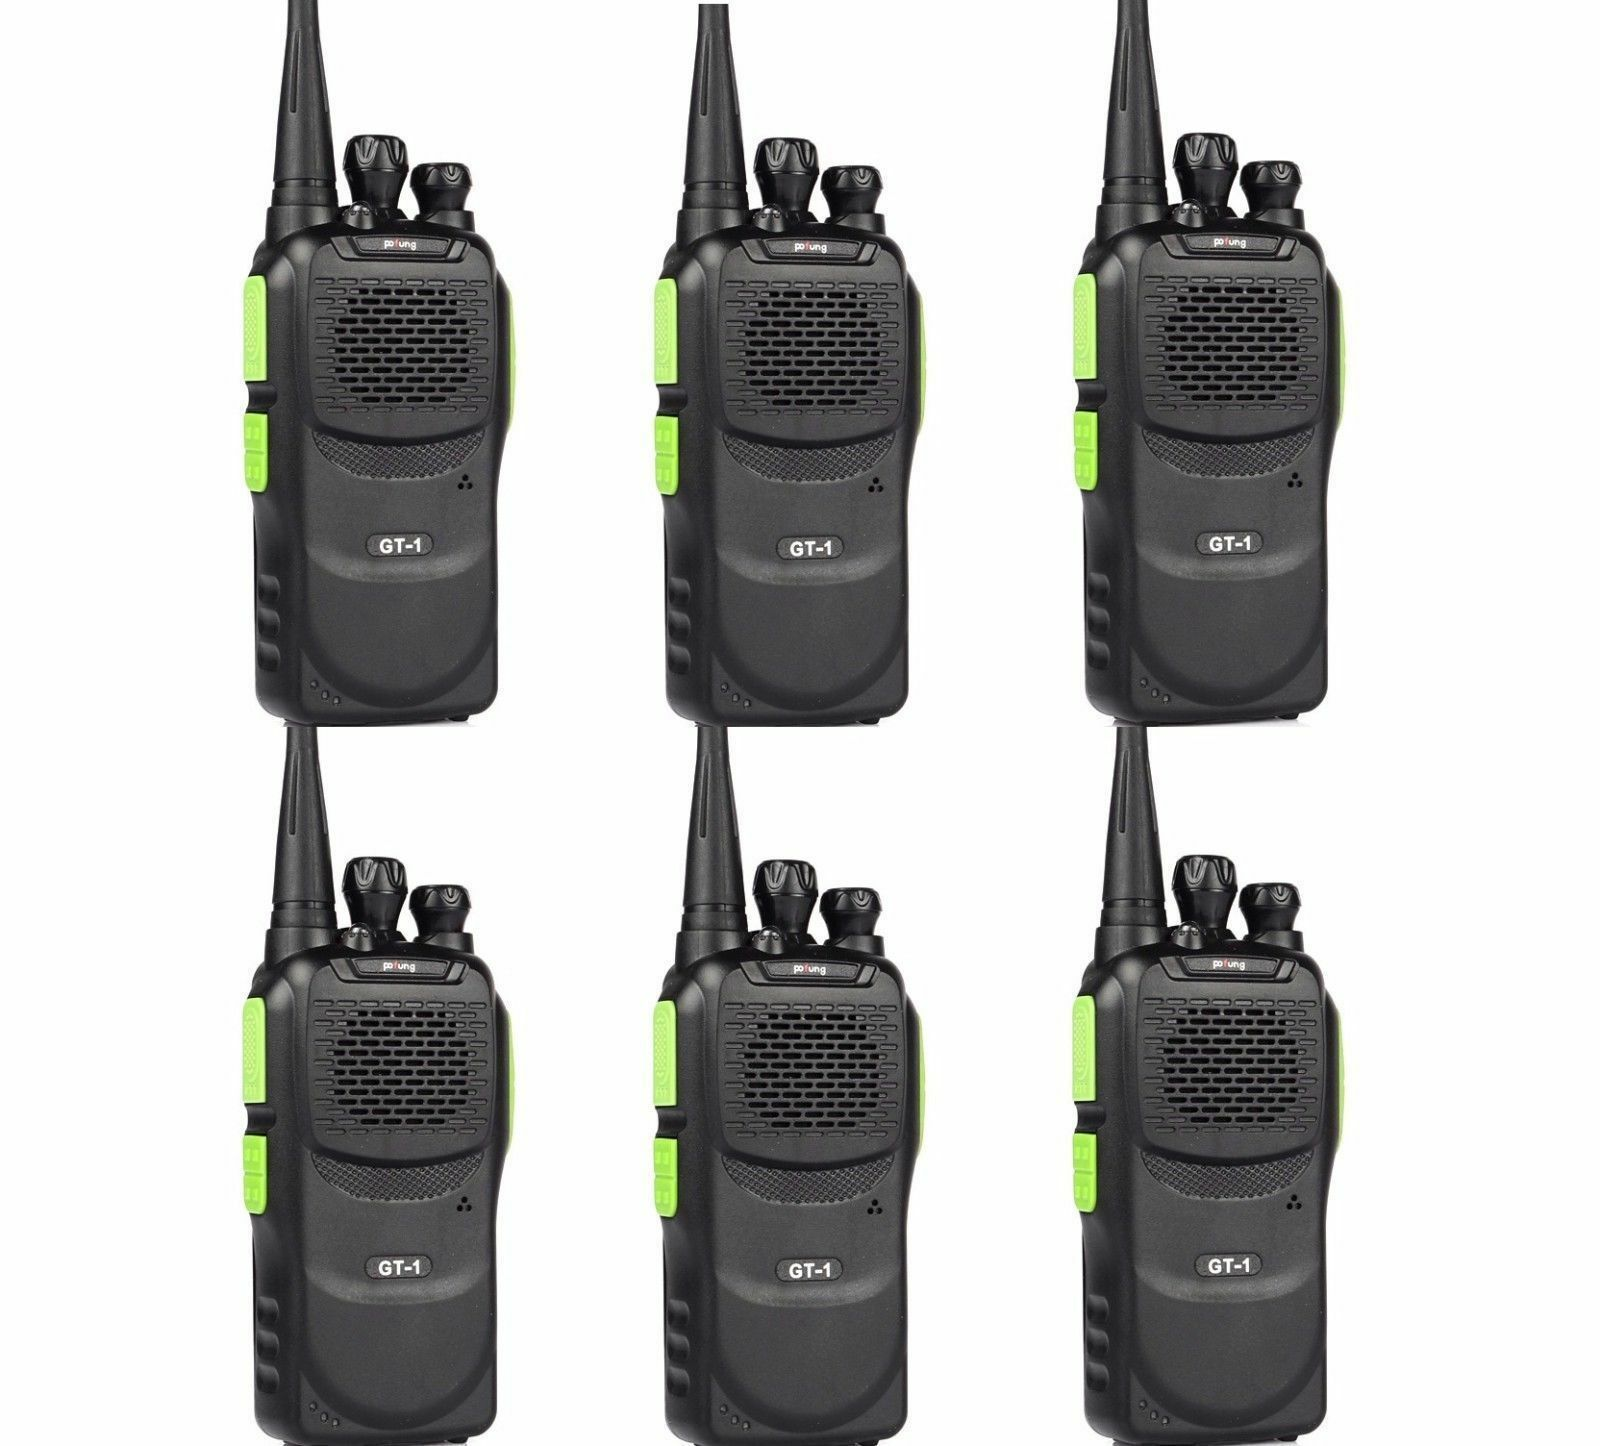 6x Baofeng Gt 1 Uhf 400 470mhz Two Way Ham Radio 5w Fm Walkie Talkie Ht 3tp Dual Band Mark Iii Of 11free Shipping